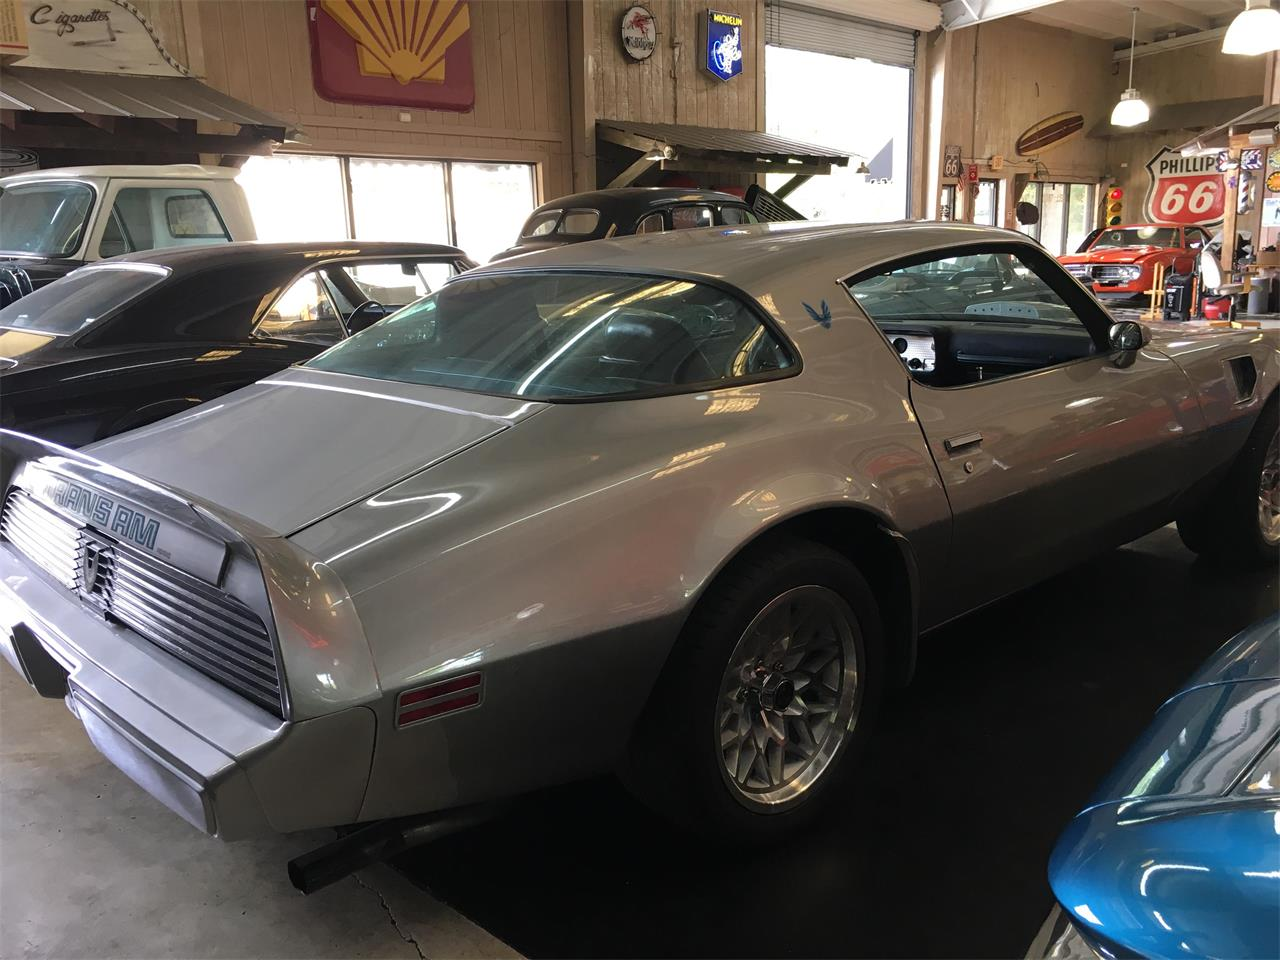 1981 Pontiac Firebird Trans Am for sale in Ponte Verda Beach, FL – photo 18